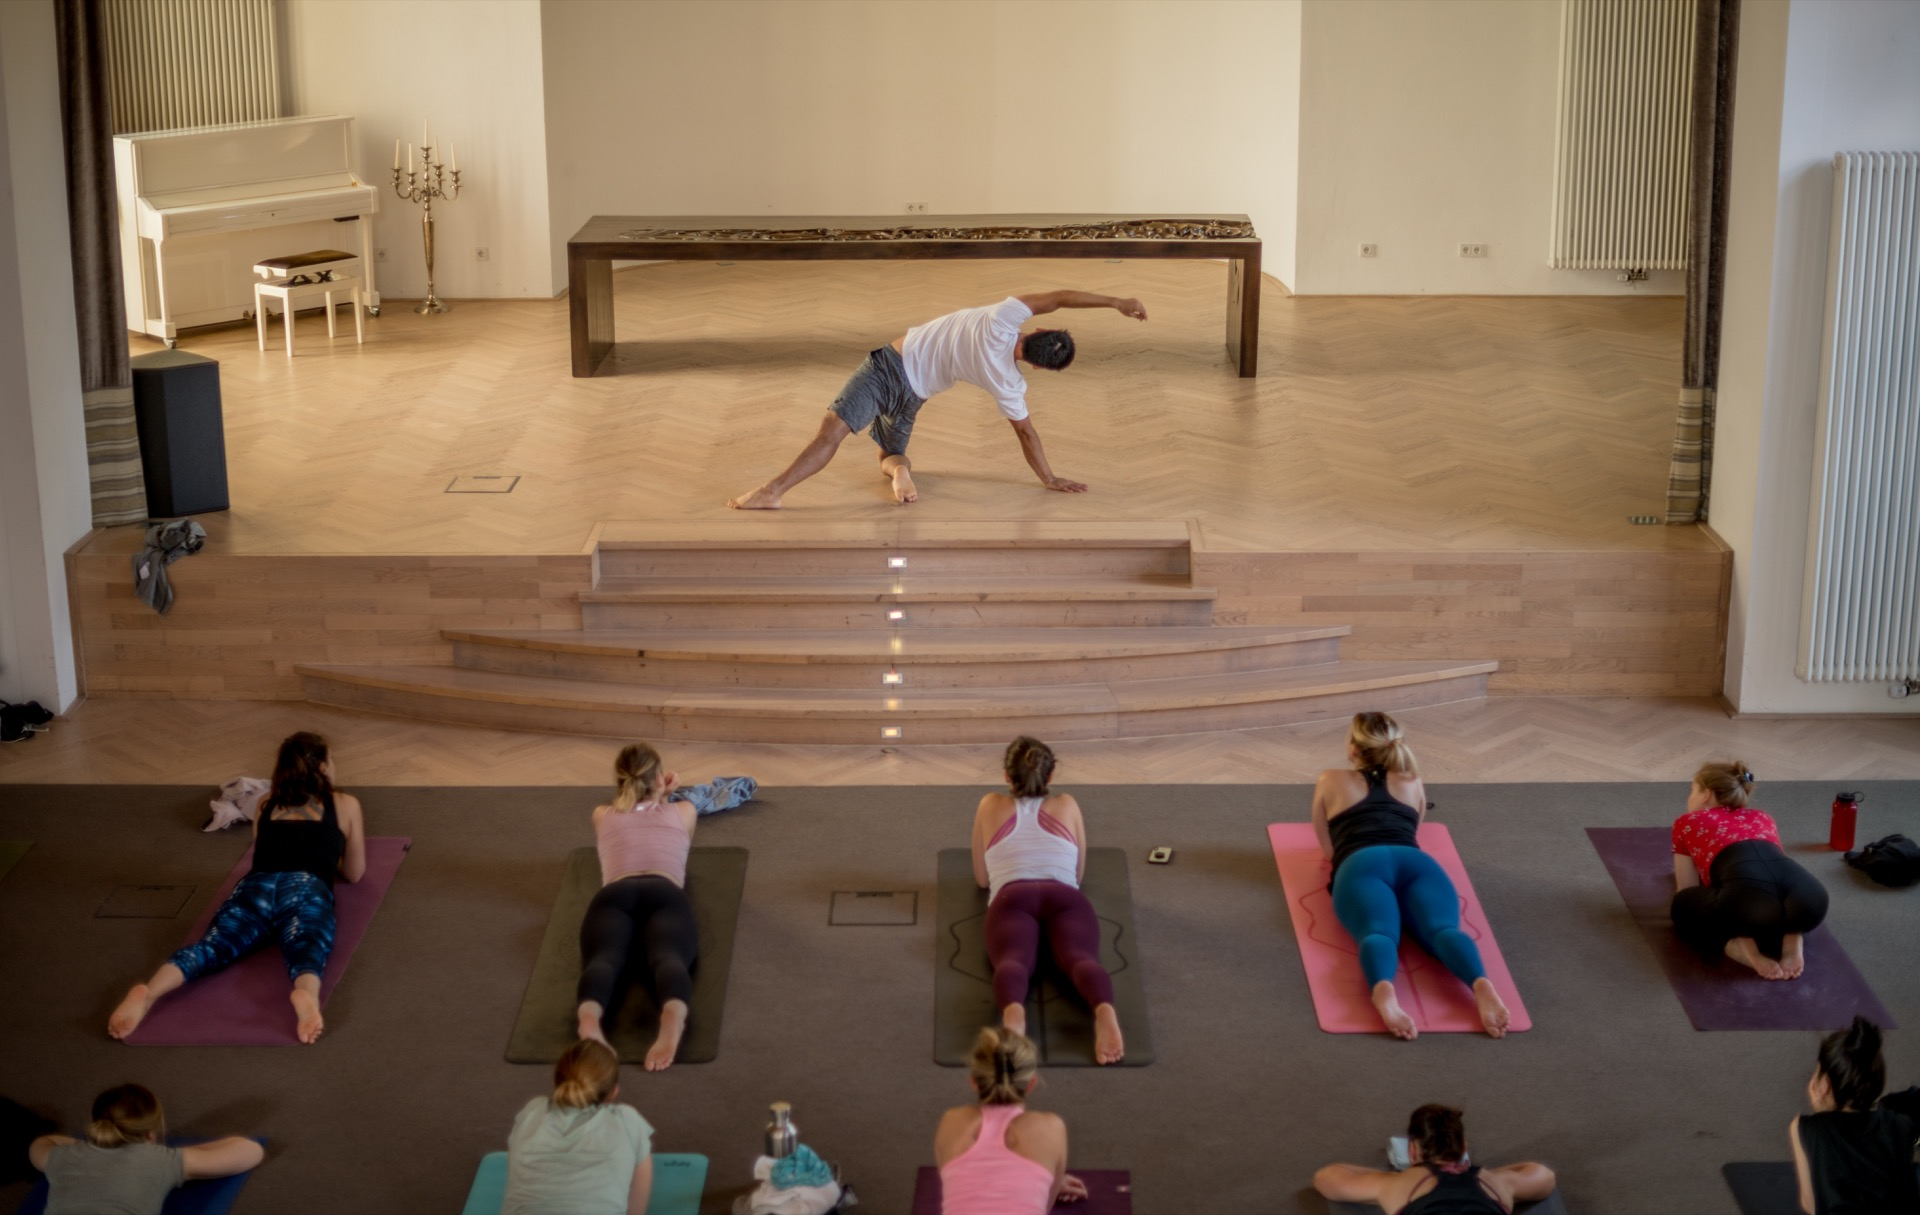 Hie-Kim-Friends-2019-Yoga-Retreat-Alina-Matis-Photography-041 - Hie Kim Yoga - Yoga Retreat - Yoga Workshops und Reisen